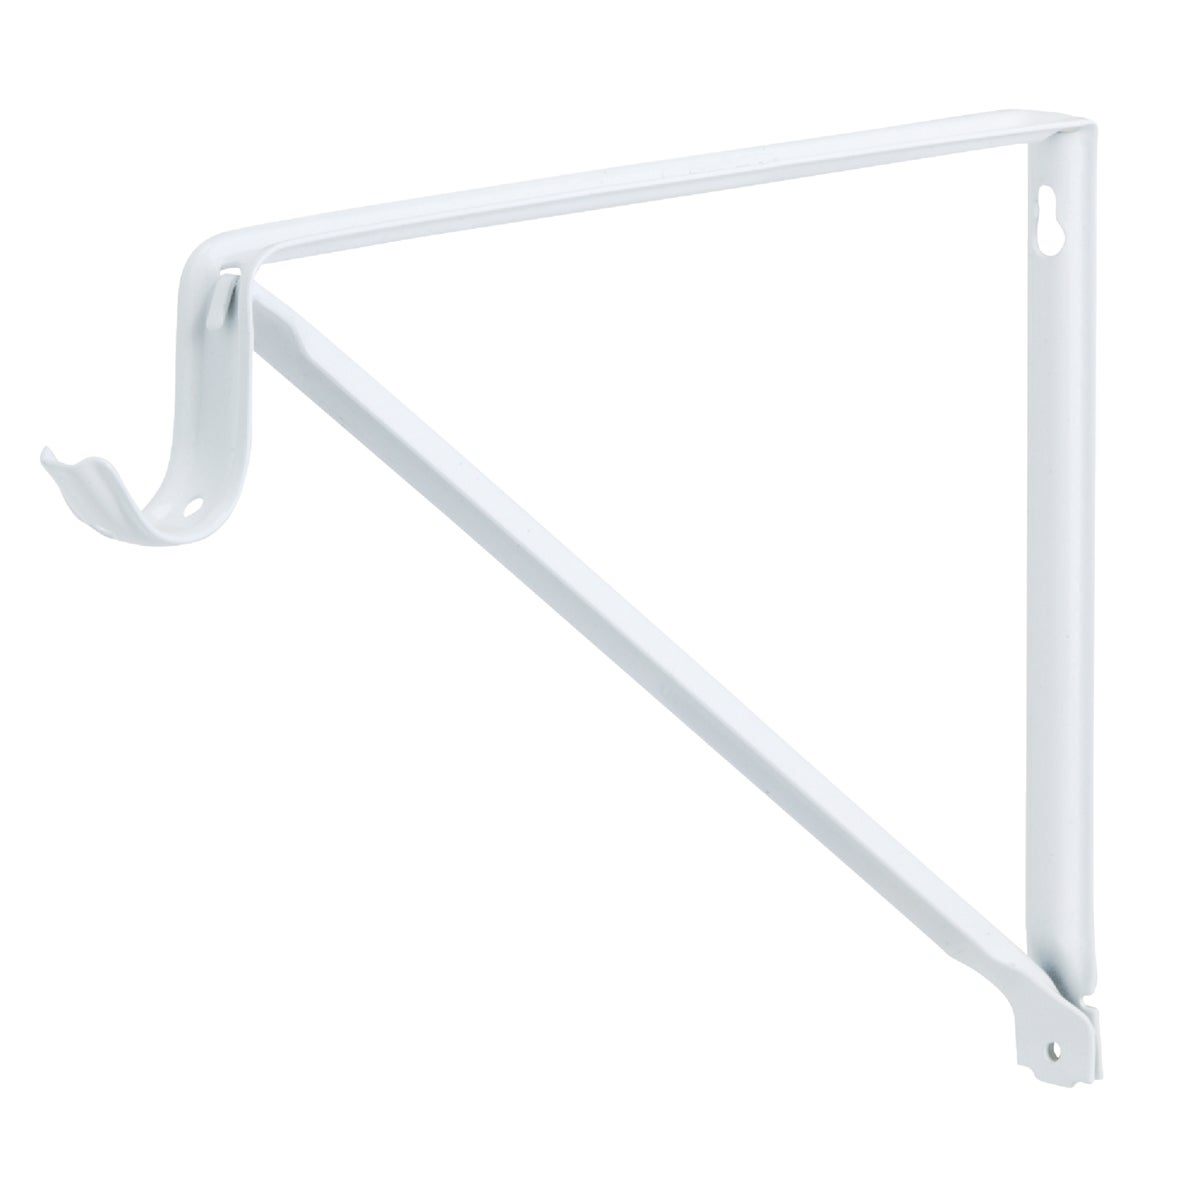 WHITE SHELF/ROD BRACKET - RP-0044-BWT by Knape & Vogt Mfg Co